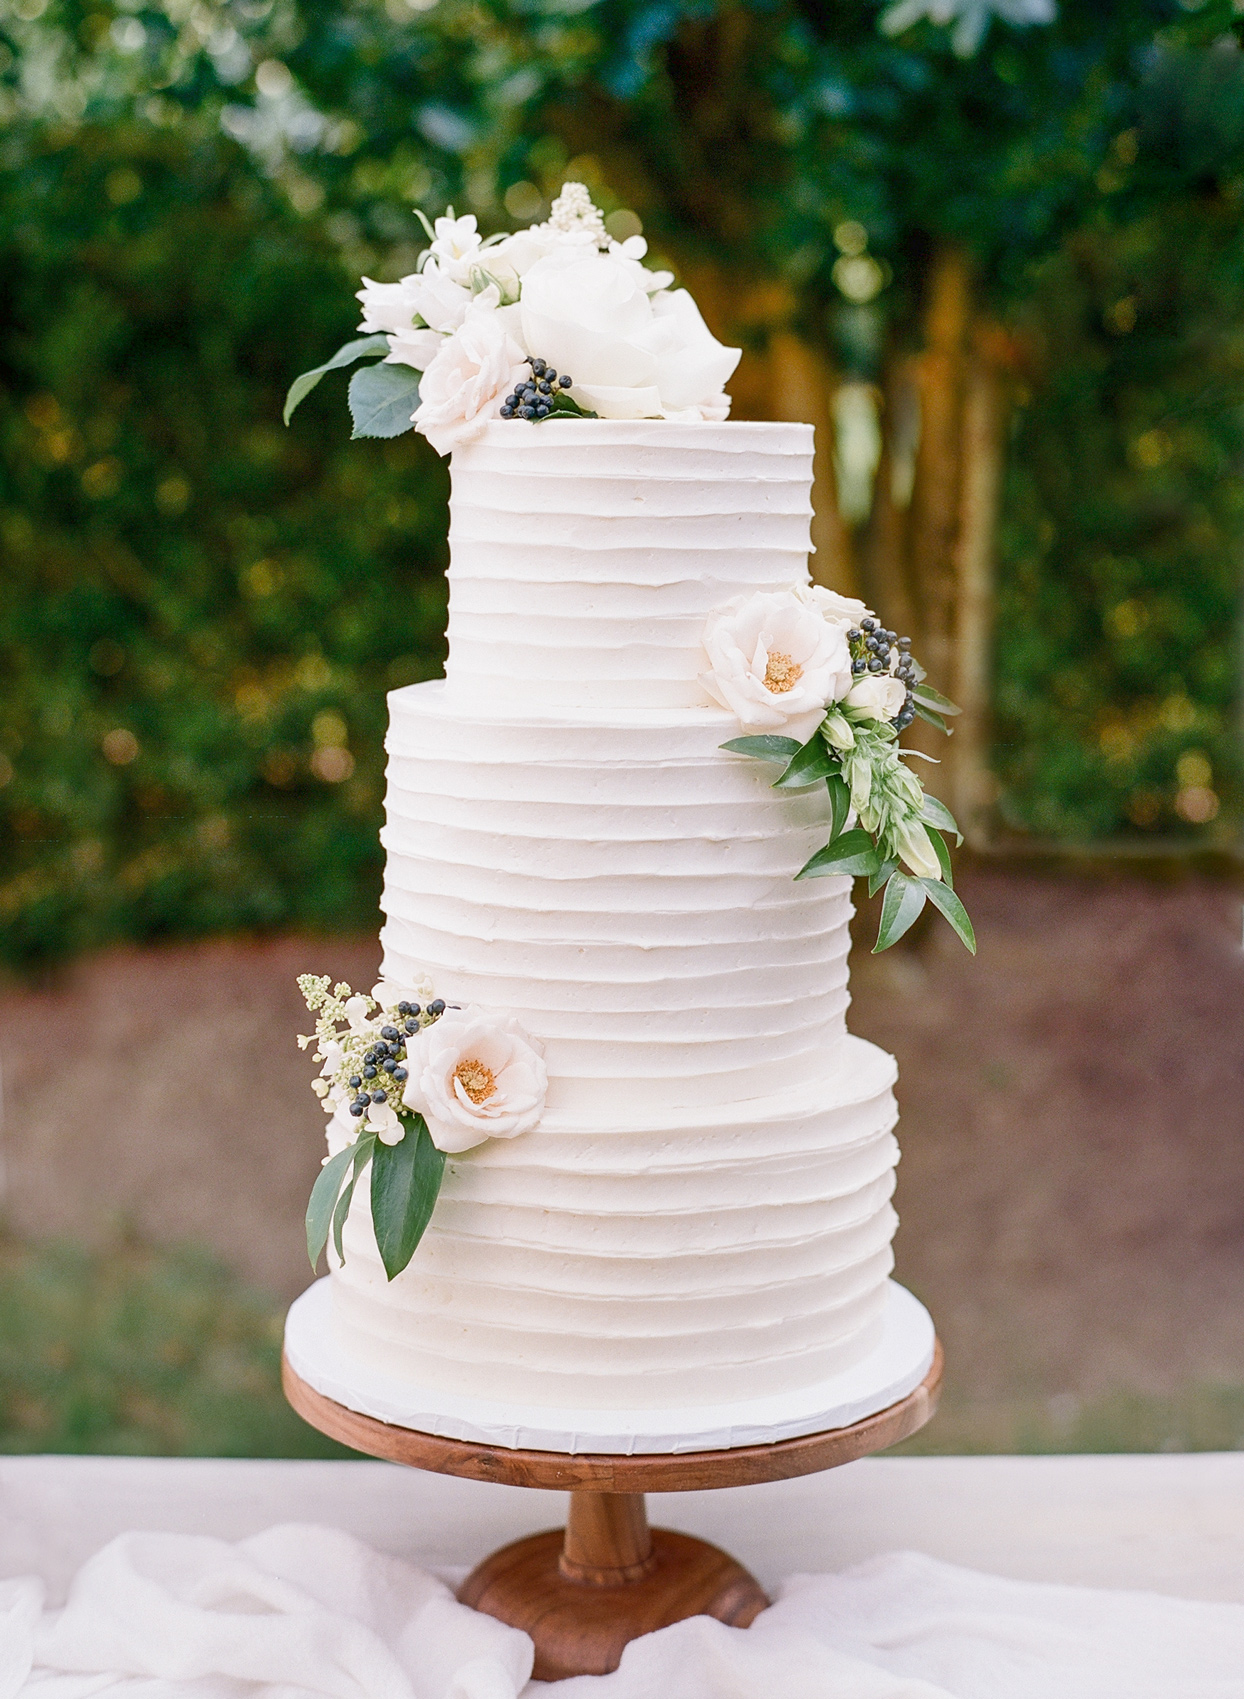 three tiered white frosted wedding cake with white floral accent decor